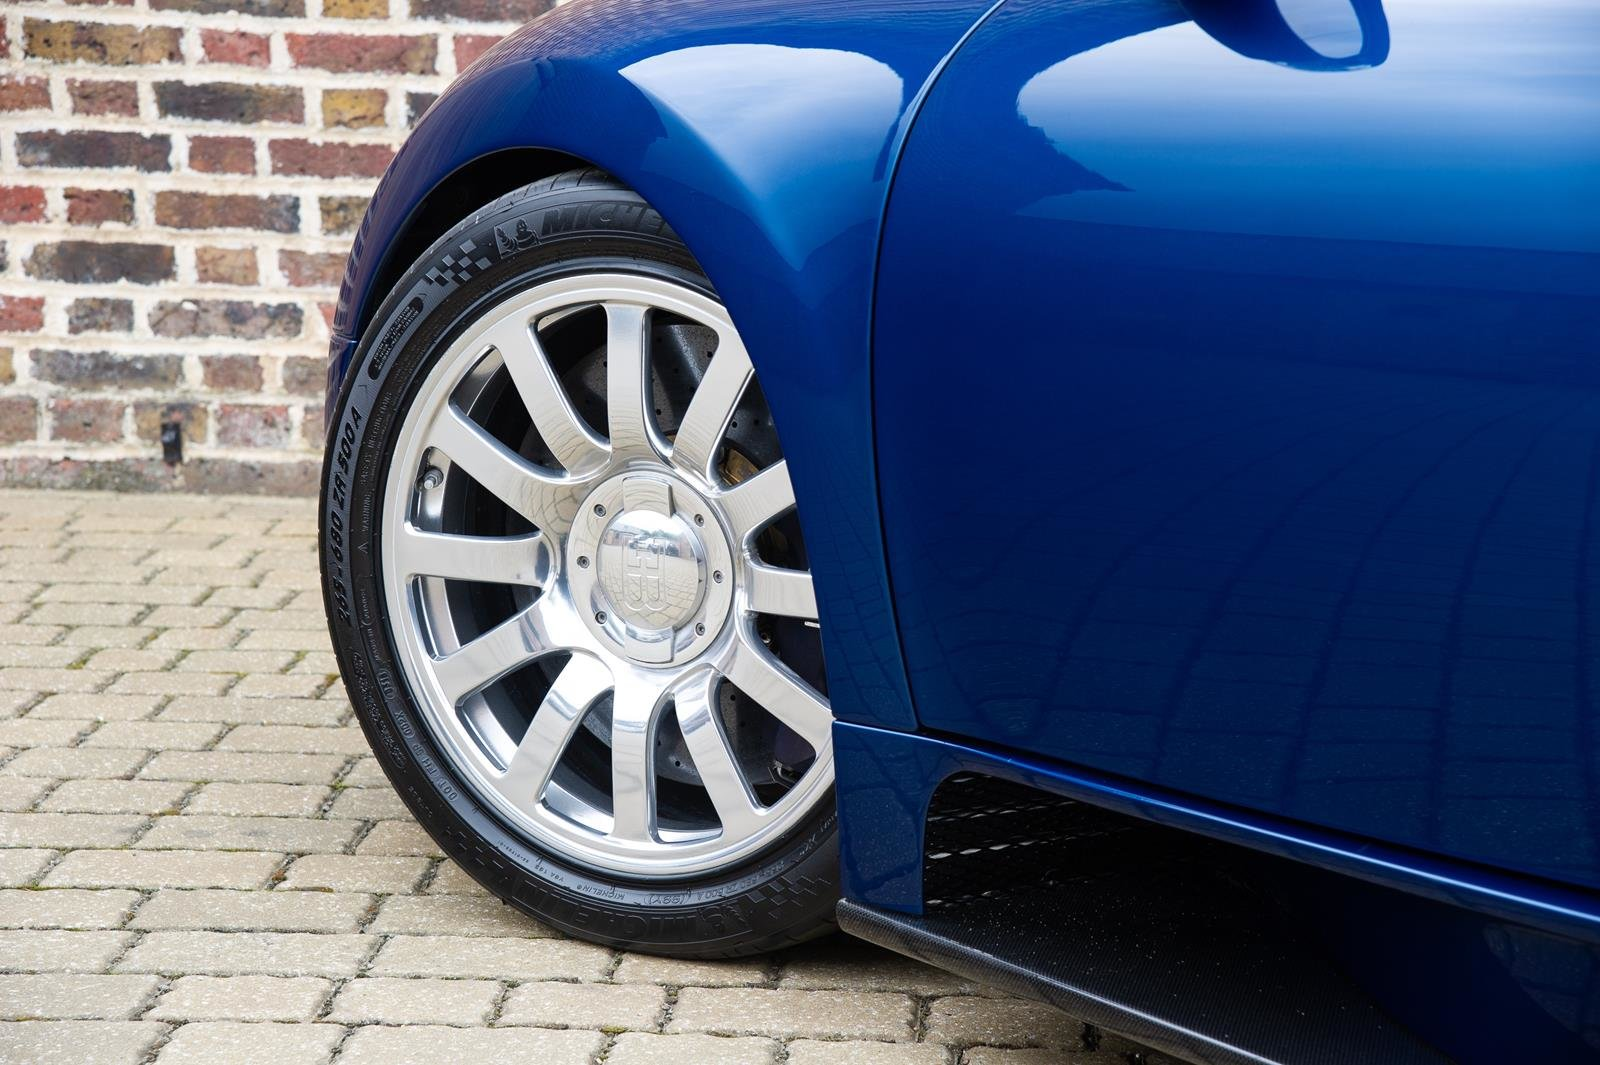 2008 Bugatti Veyron 16.4 -3 Year Bugatti Service Package Included For Sale (picture 6 of 6)